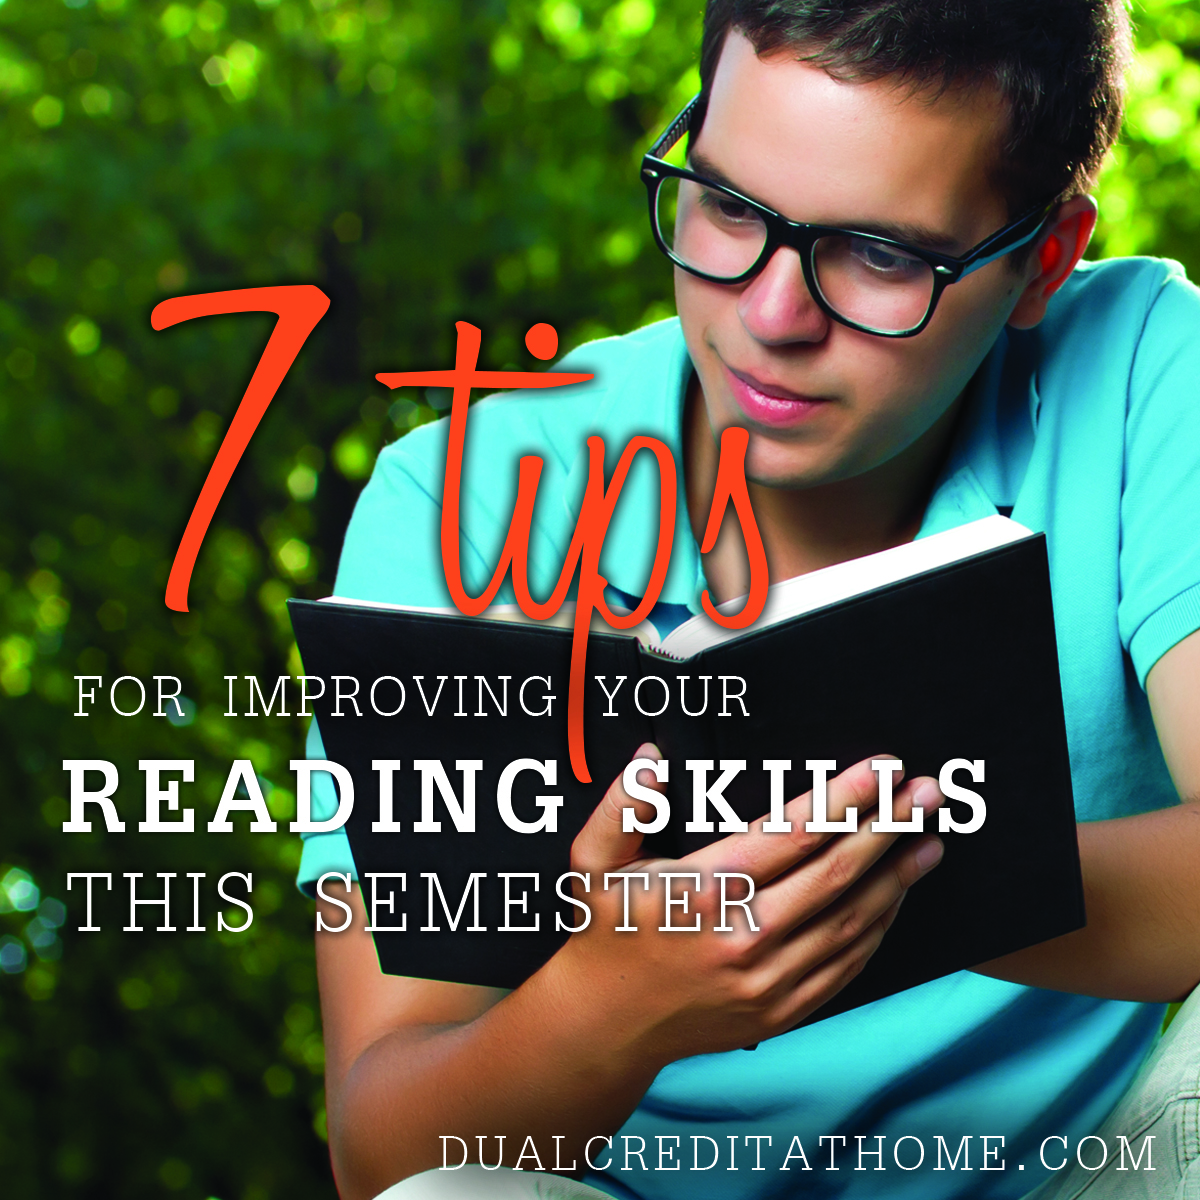 7 Tips for Improving Your Reading Skills this Semester